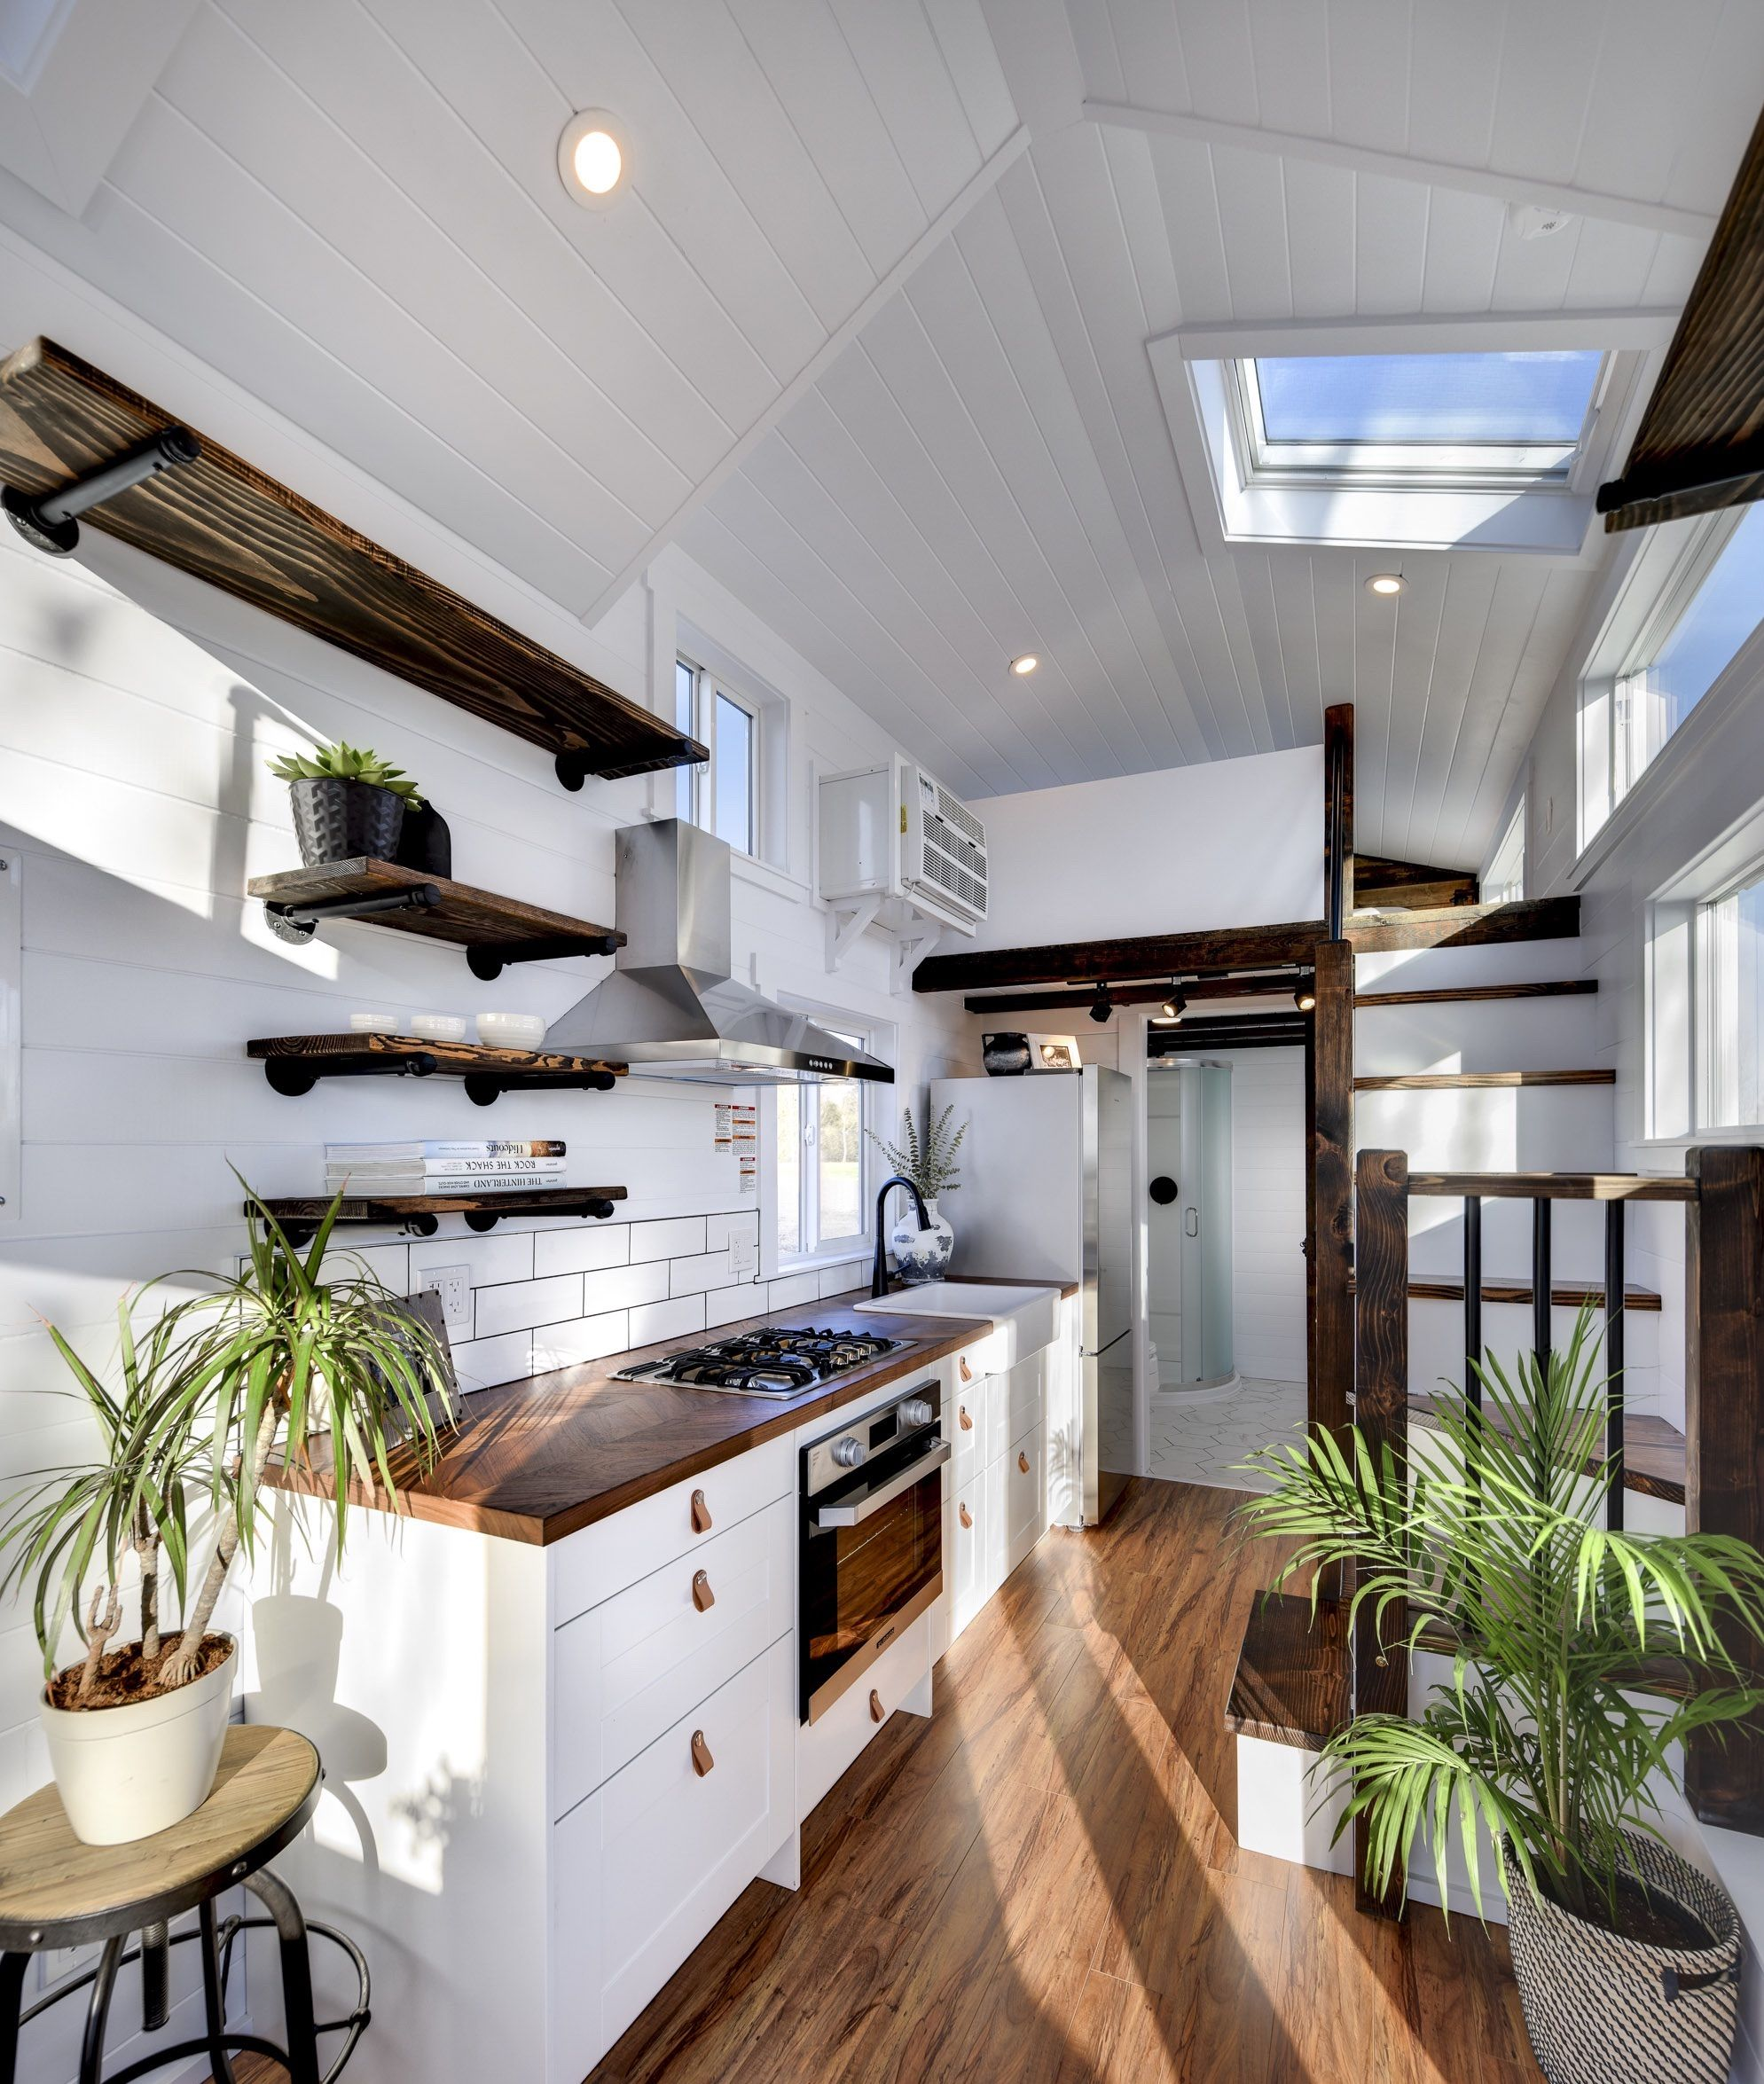 Tiny House Kitchen Complete With Herringbone Countertop With